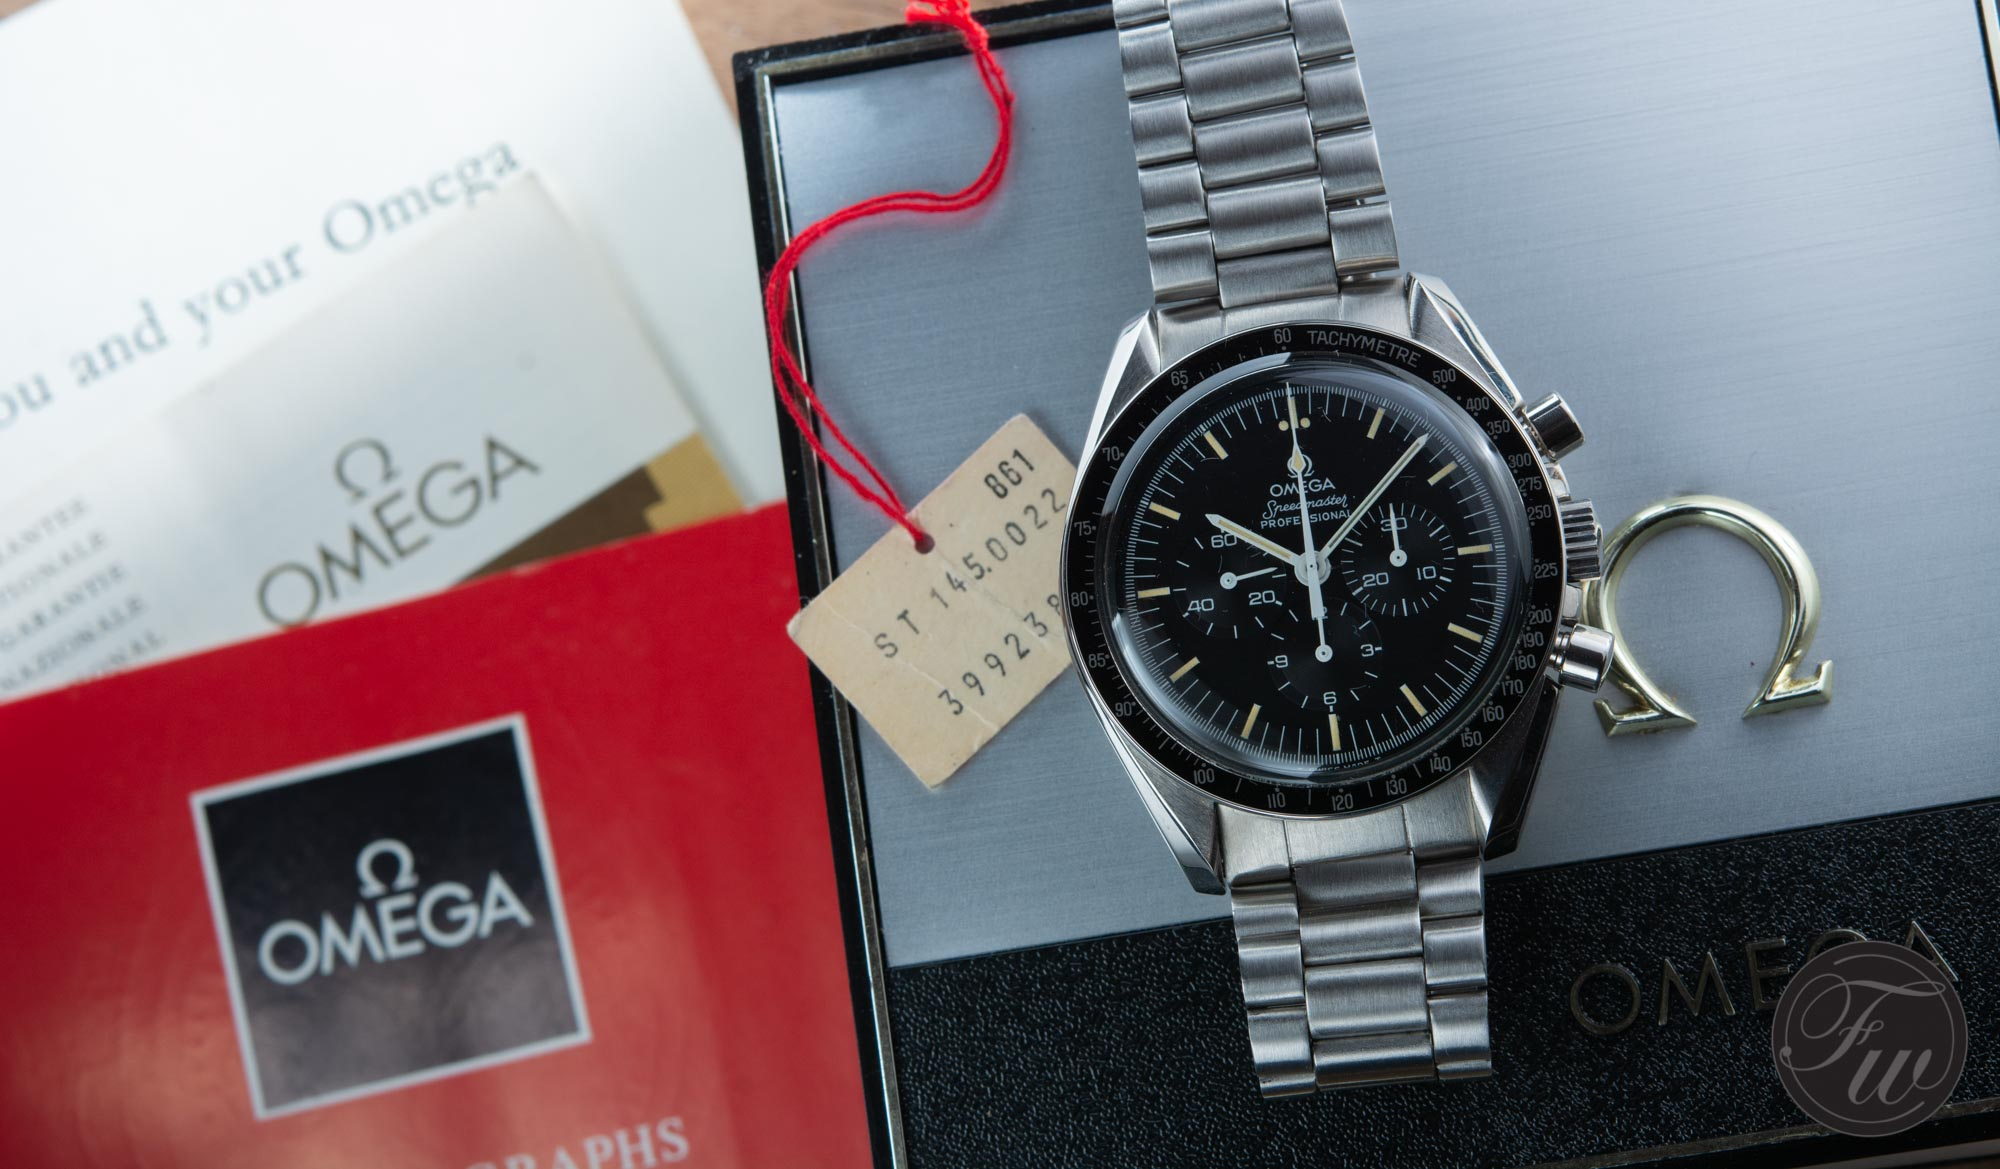 The Omega Speedmaster 145.022-76 That Took Me 15 Years To Find